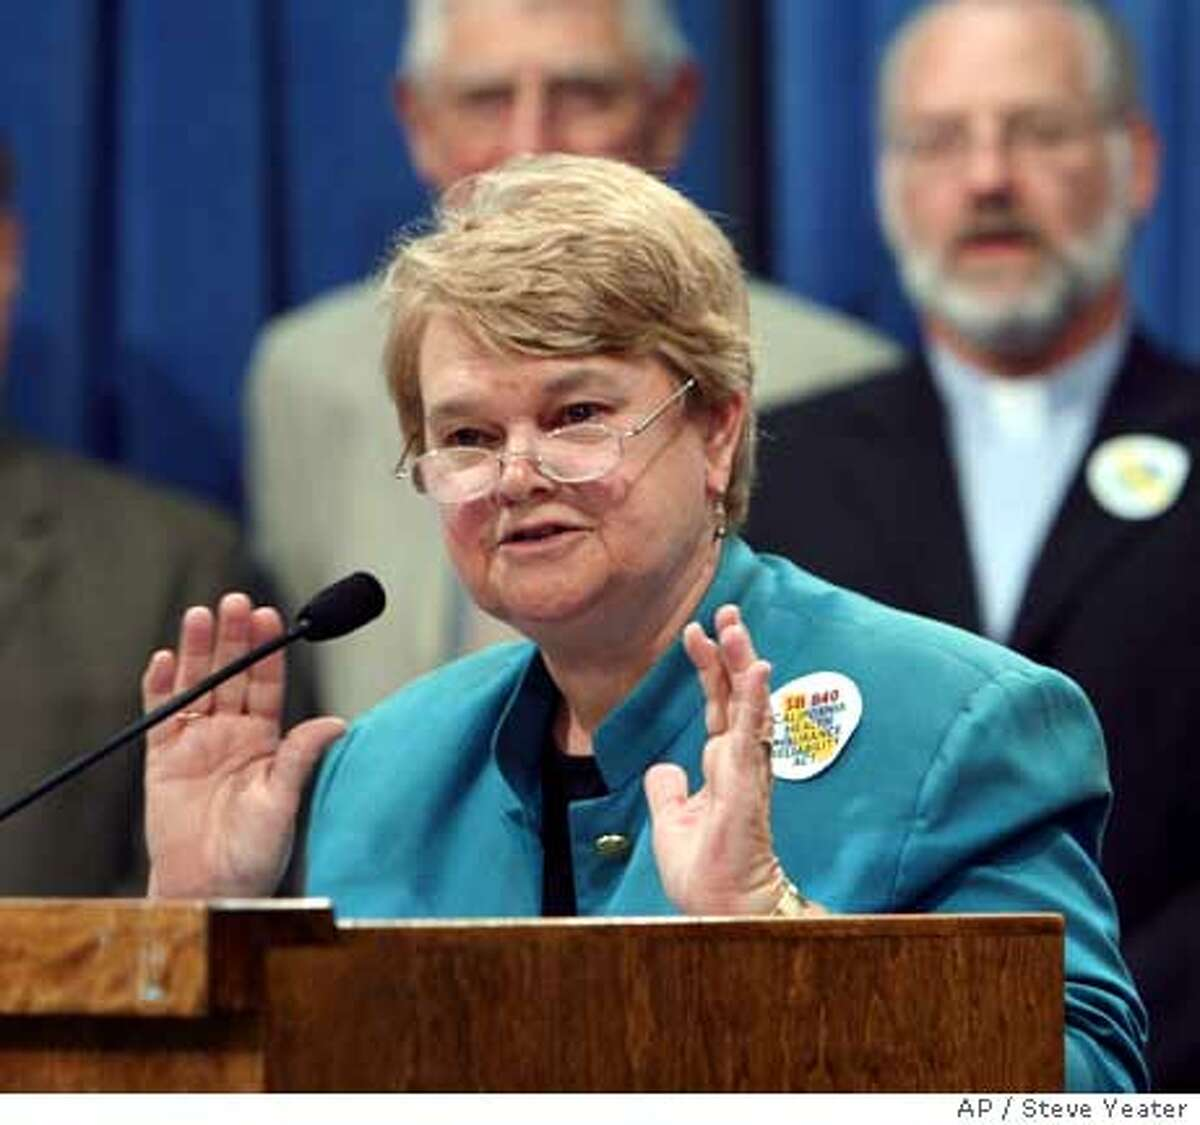 Sen. Sheila Kuehl, D-Santa Monica, talks about efforts to pass her universal health care bill SB 840 during a news conference at the Capitol in Sacramento, Calif., on Monday, Aug. 28, 2006. (AP Photo/Stee Yeater)